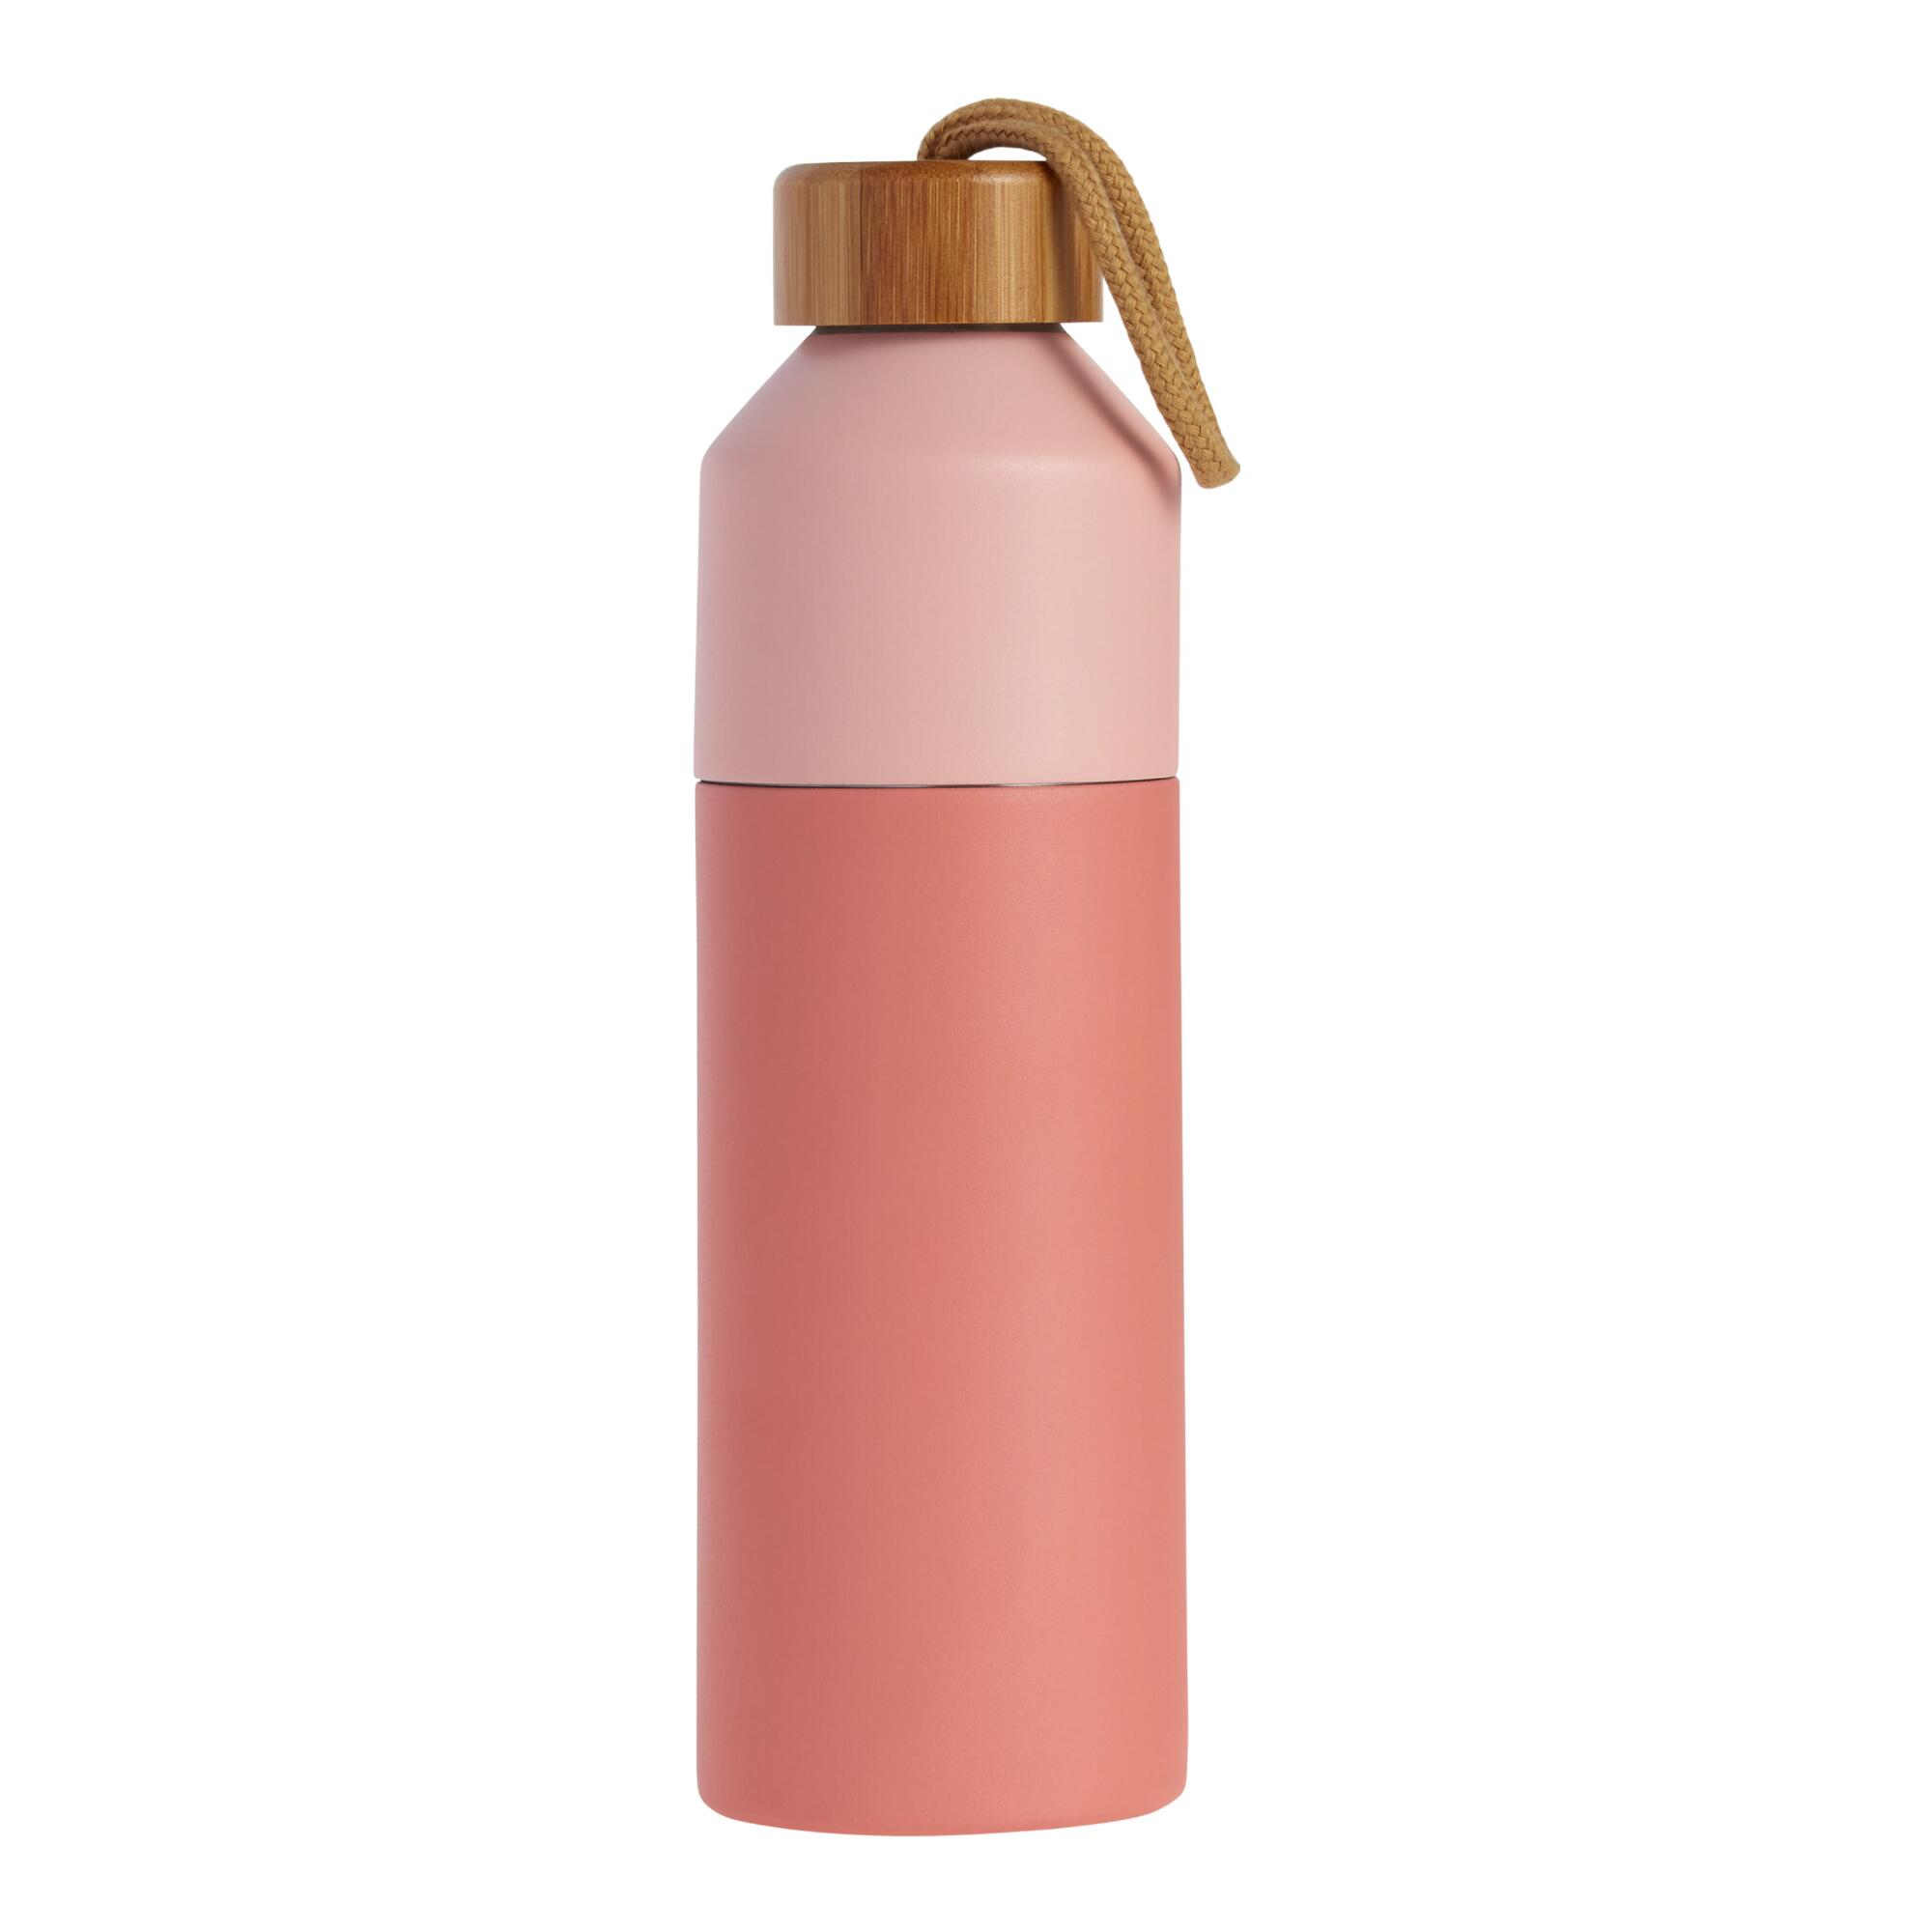 Two Tone Coral Infuser Water Bottle With Bamboo Lid $19.99